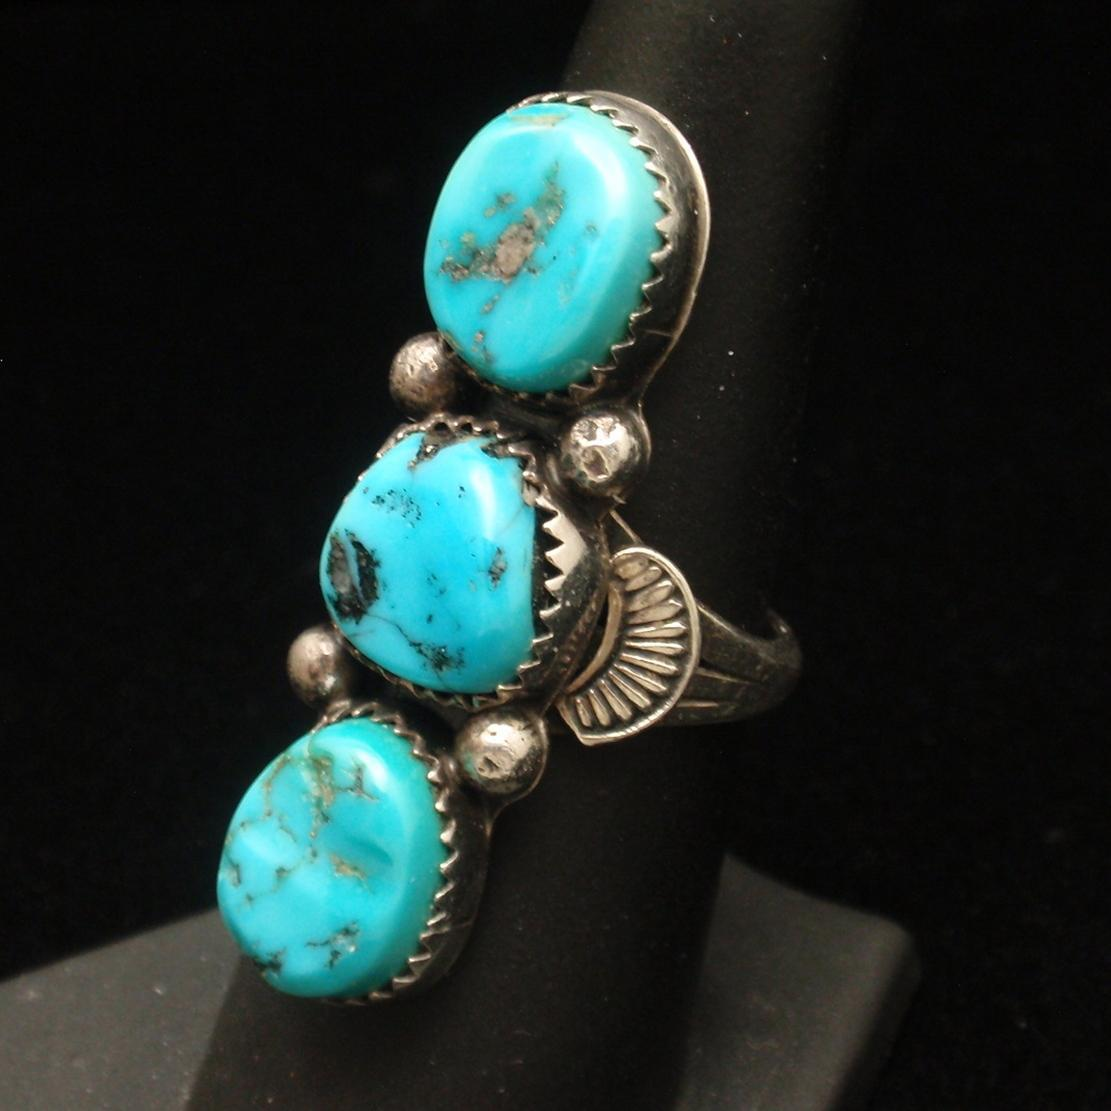 Sterling Silver Turquoise Ring Size 6.5 Hallmarked RB